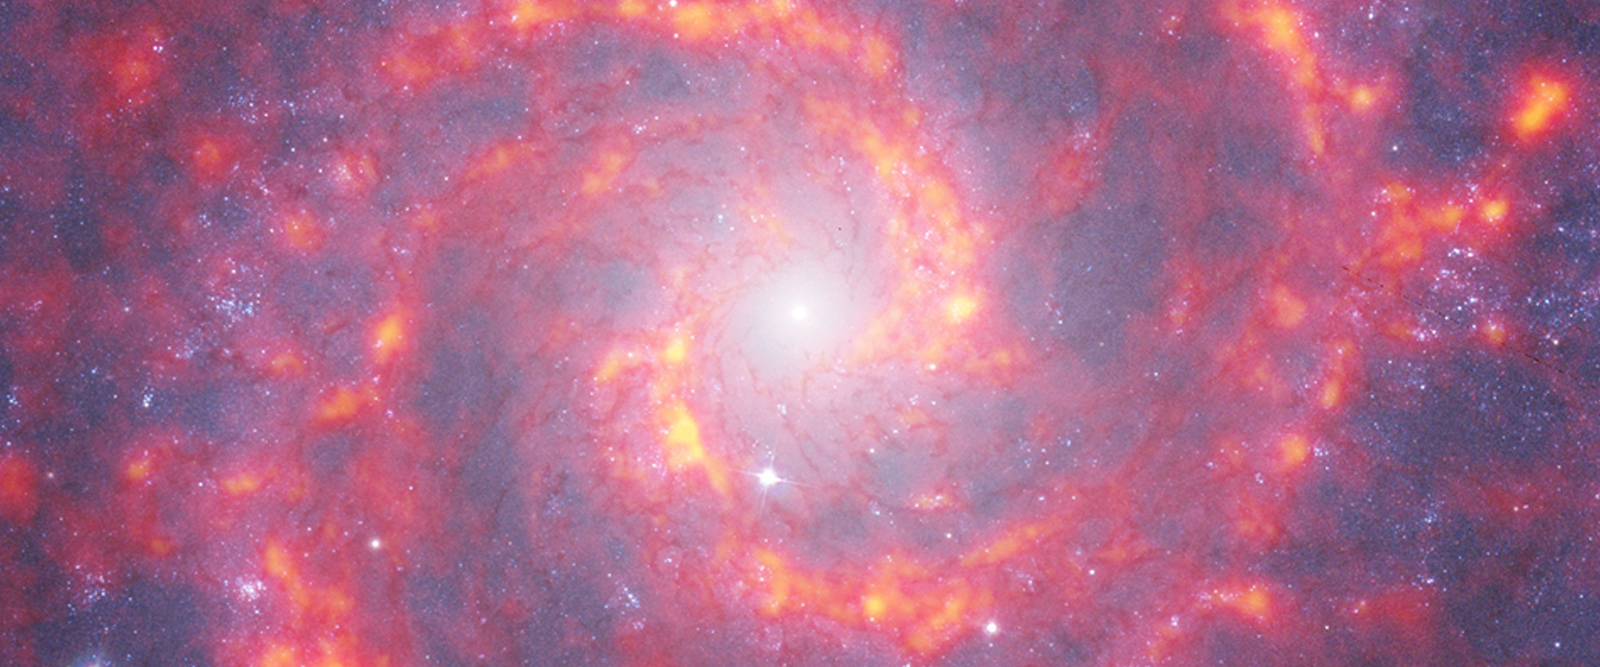 ALMA carries out large census of 'star factories' in other galaxies